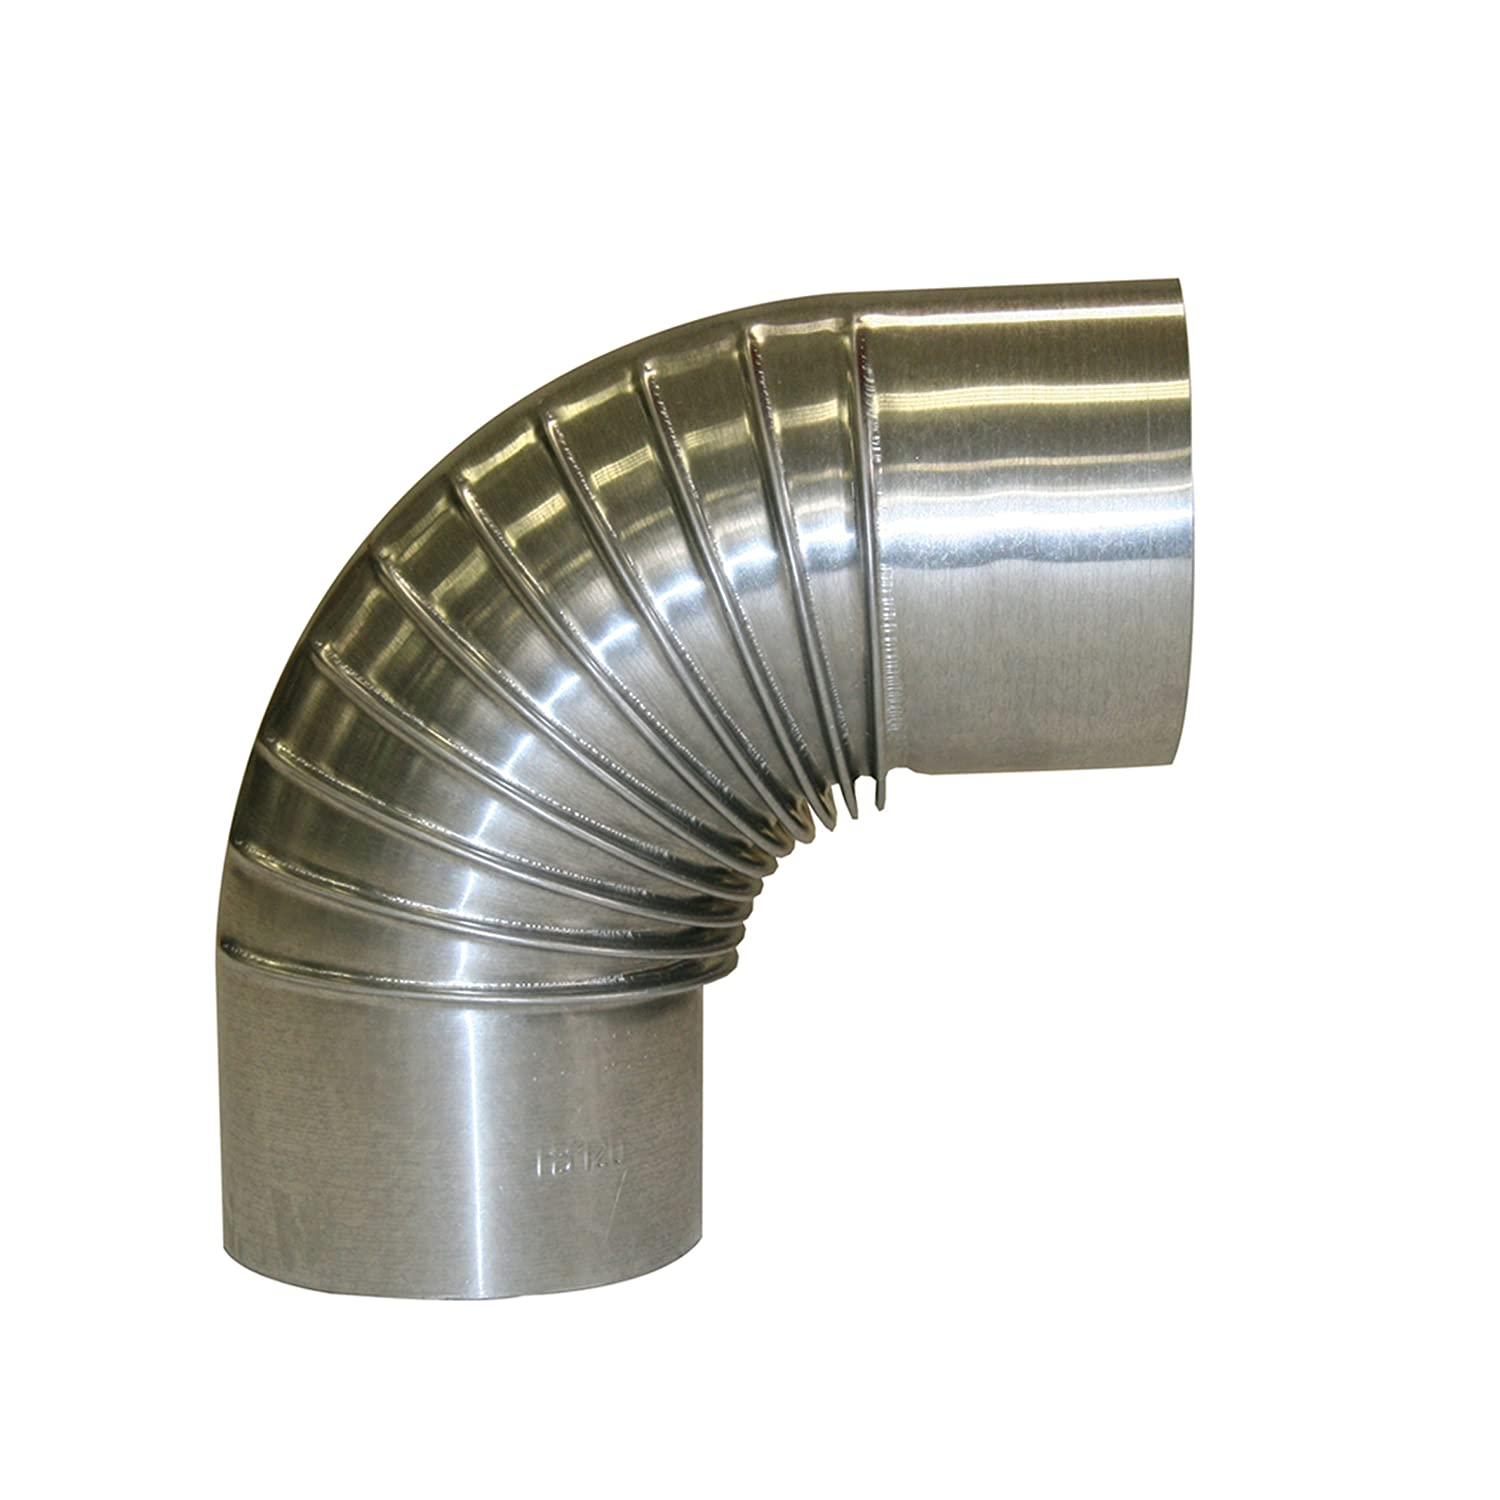 Kamino-Flam 90° Elbow Pipe Ø 100mm, Hot-dip Aluminised (FAL) Steel Stove Pipe Elbow, Heat Resistant Flue Pipe for Stoves, Stainless Elbow Chimney Pipe EN 1856-2 Standard Kamino - Flam 331180